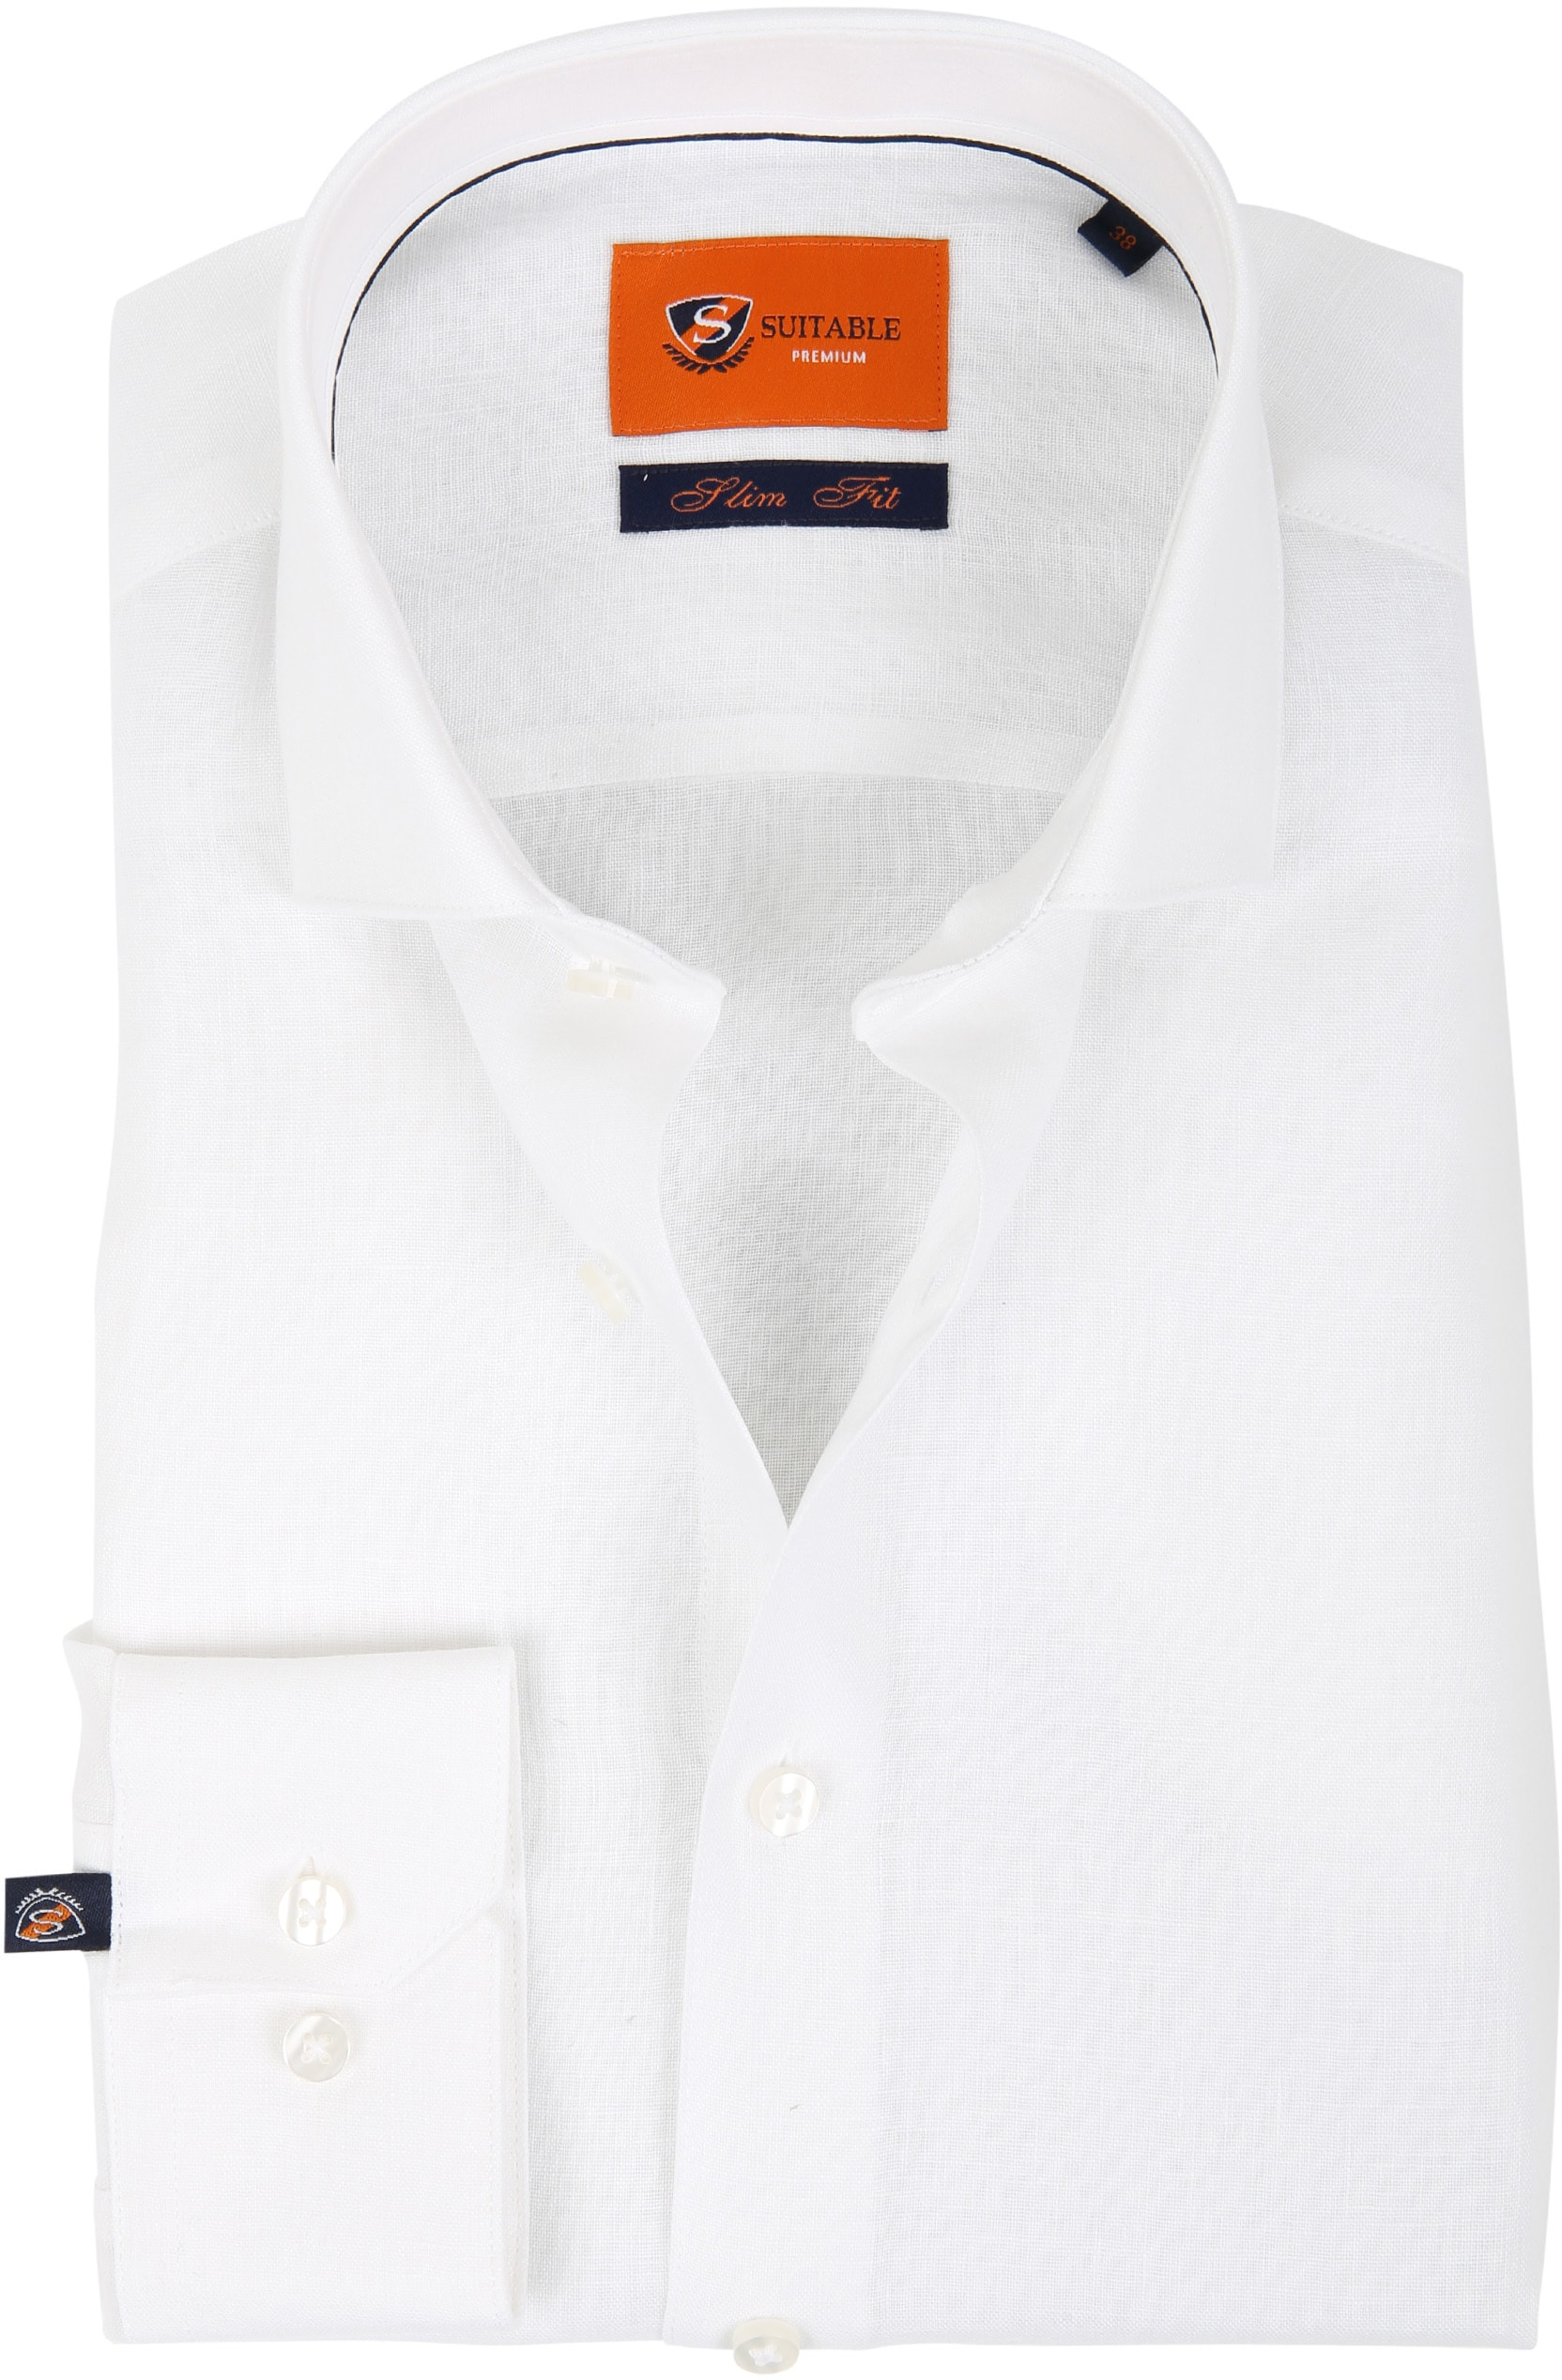 Suitable Shirt Linen White D81-13 foto 0